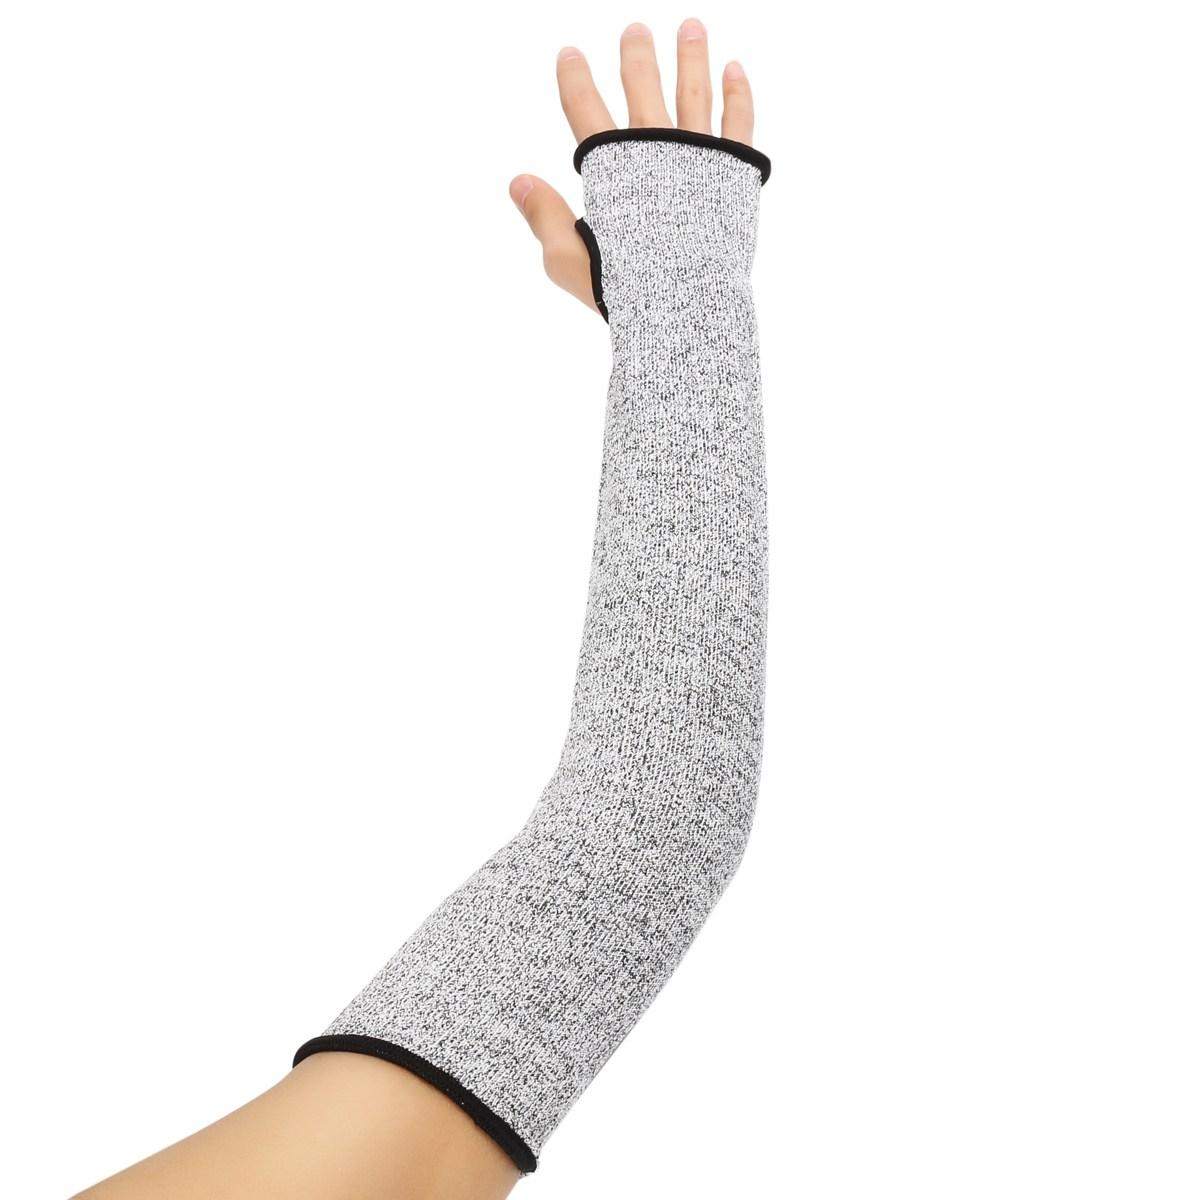 High Quality Outdoor Anti Cut Arm Sleeve Protector Sport Safety Cut ...